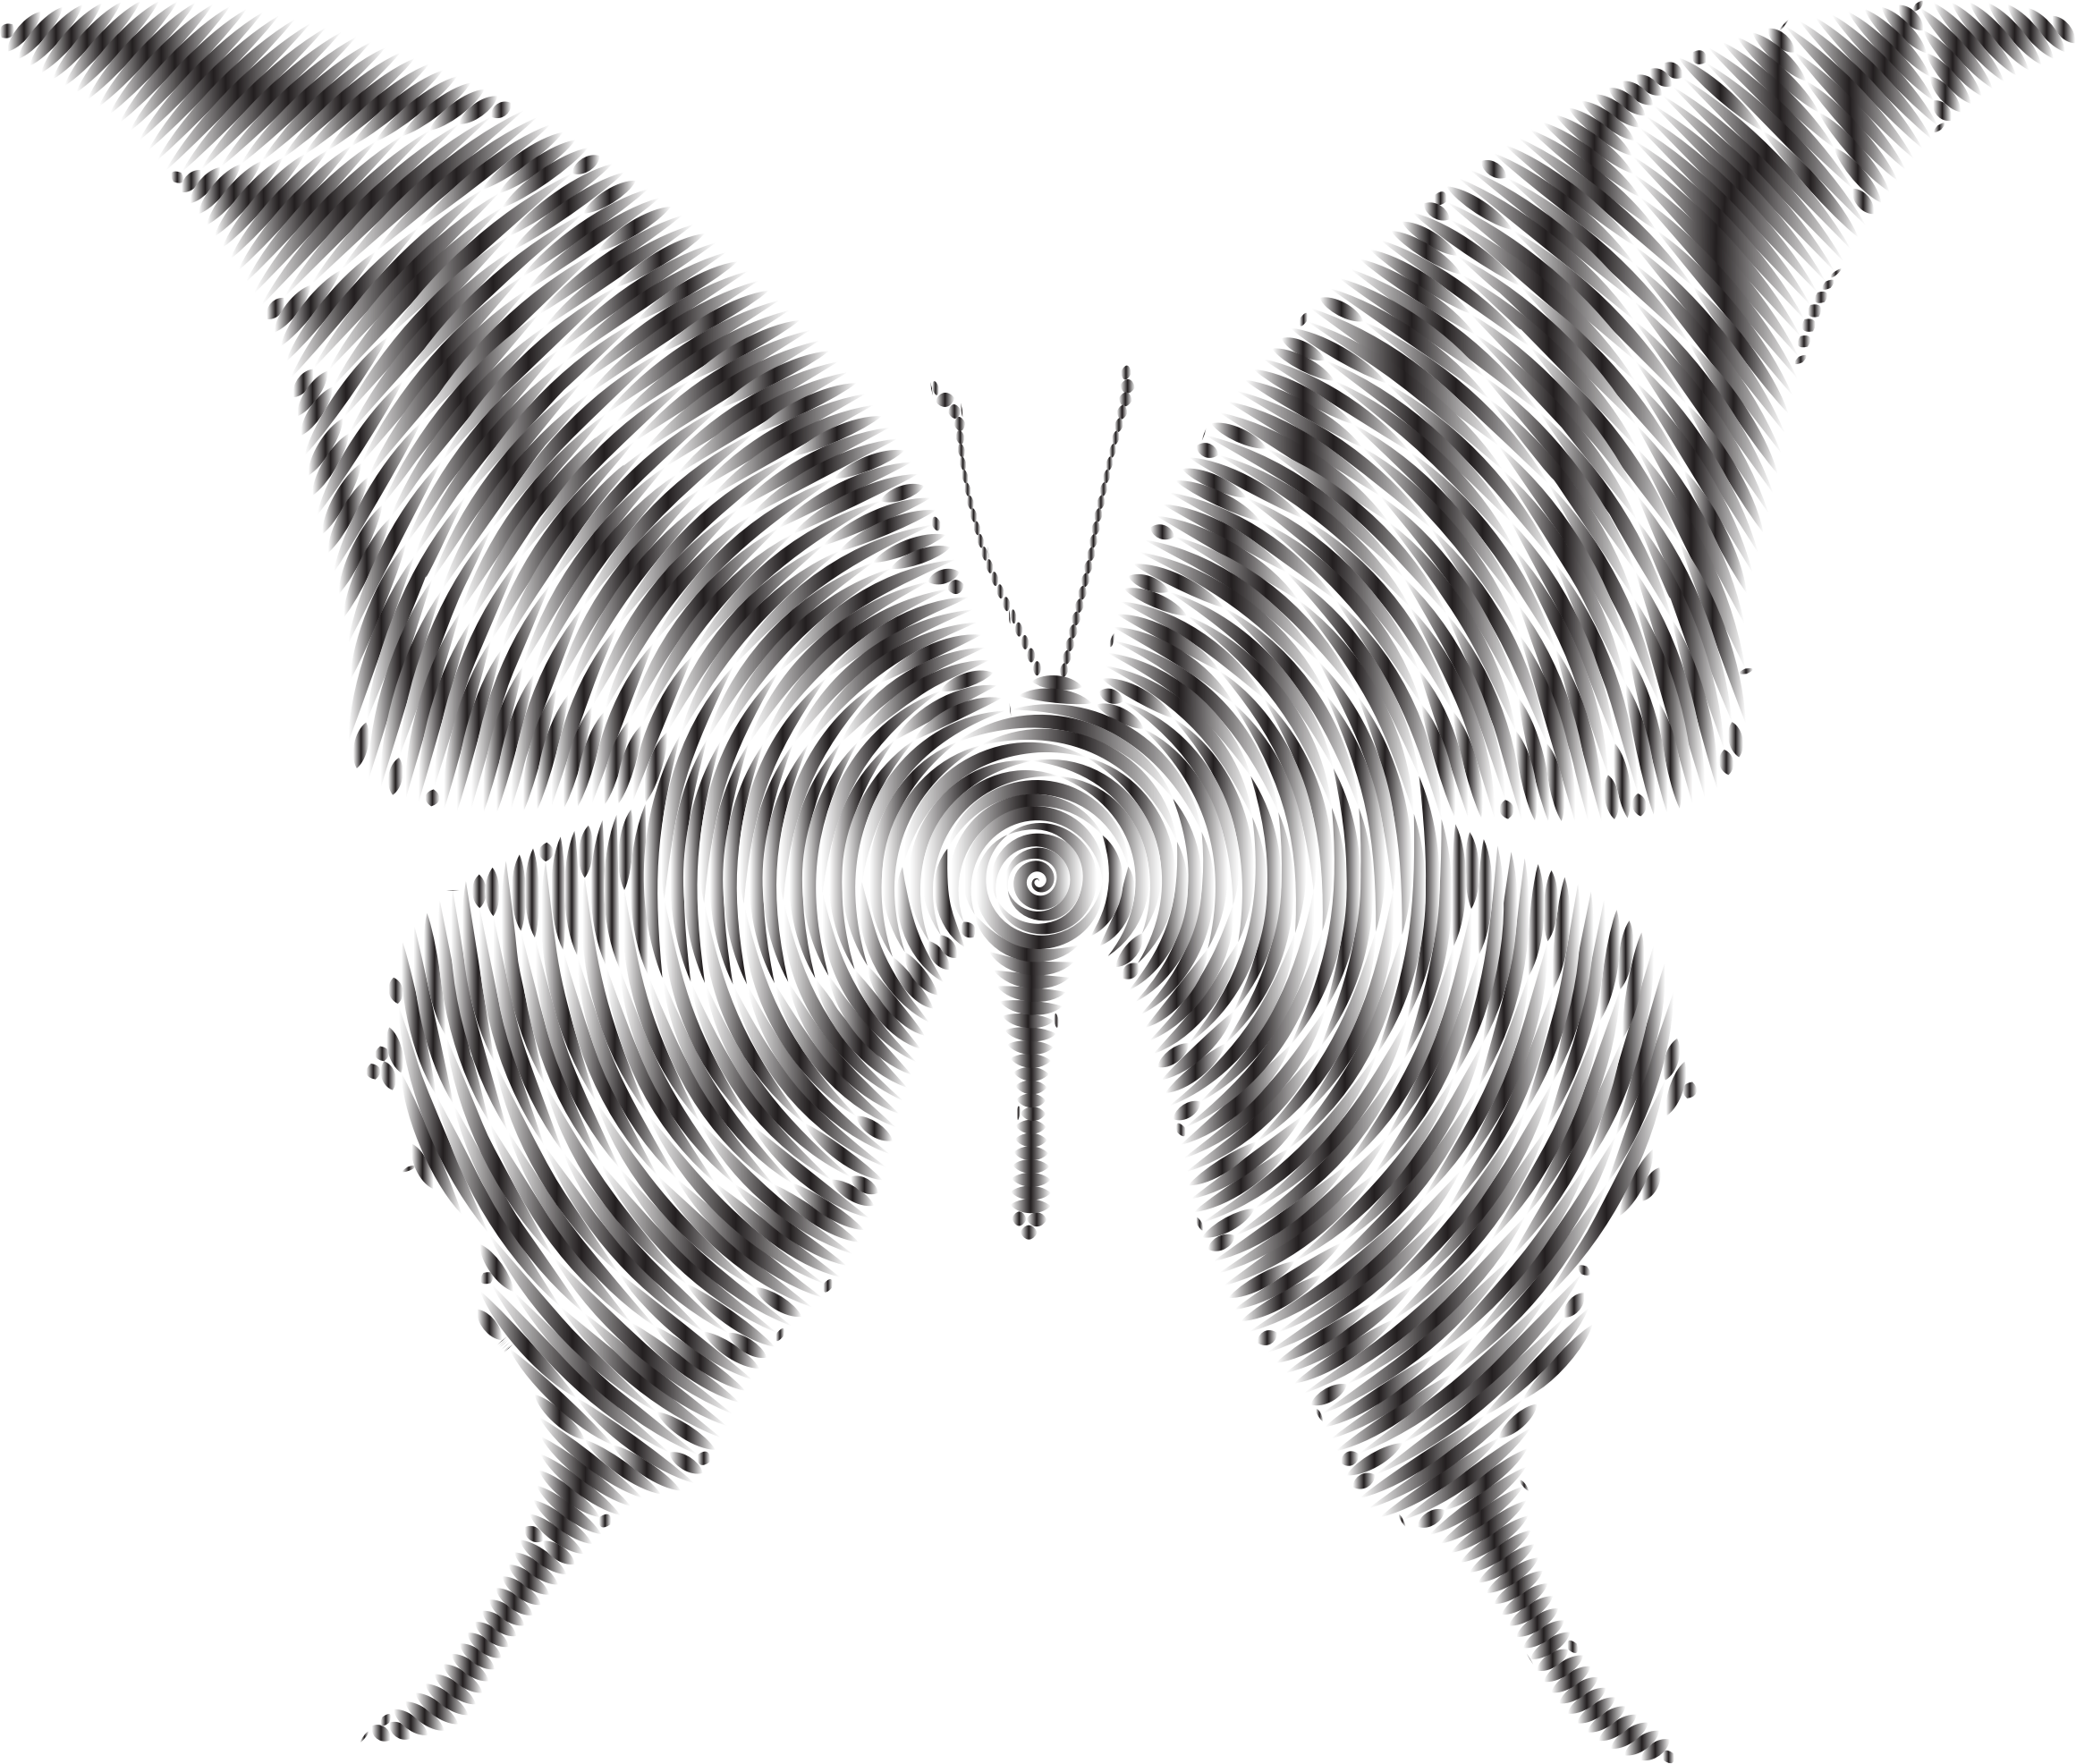 Prismatic Butterfly Silhouette 6 Concentric 2 by GDJ